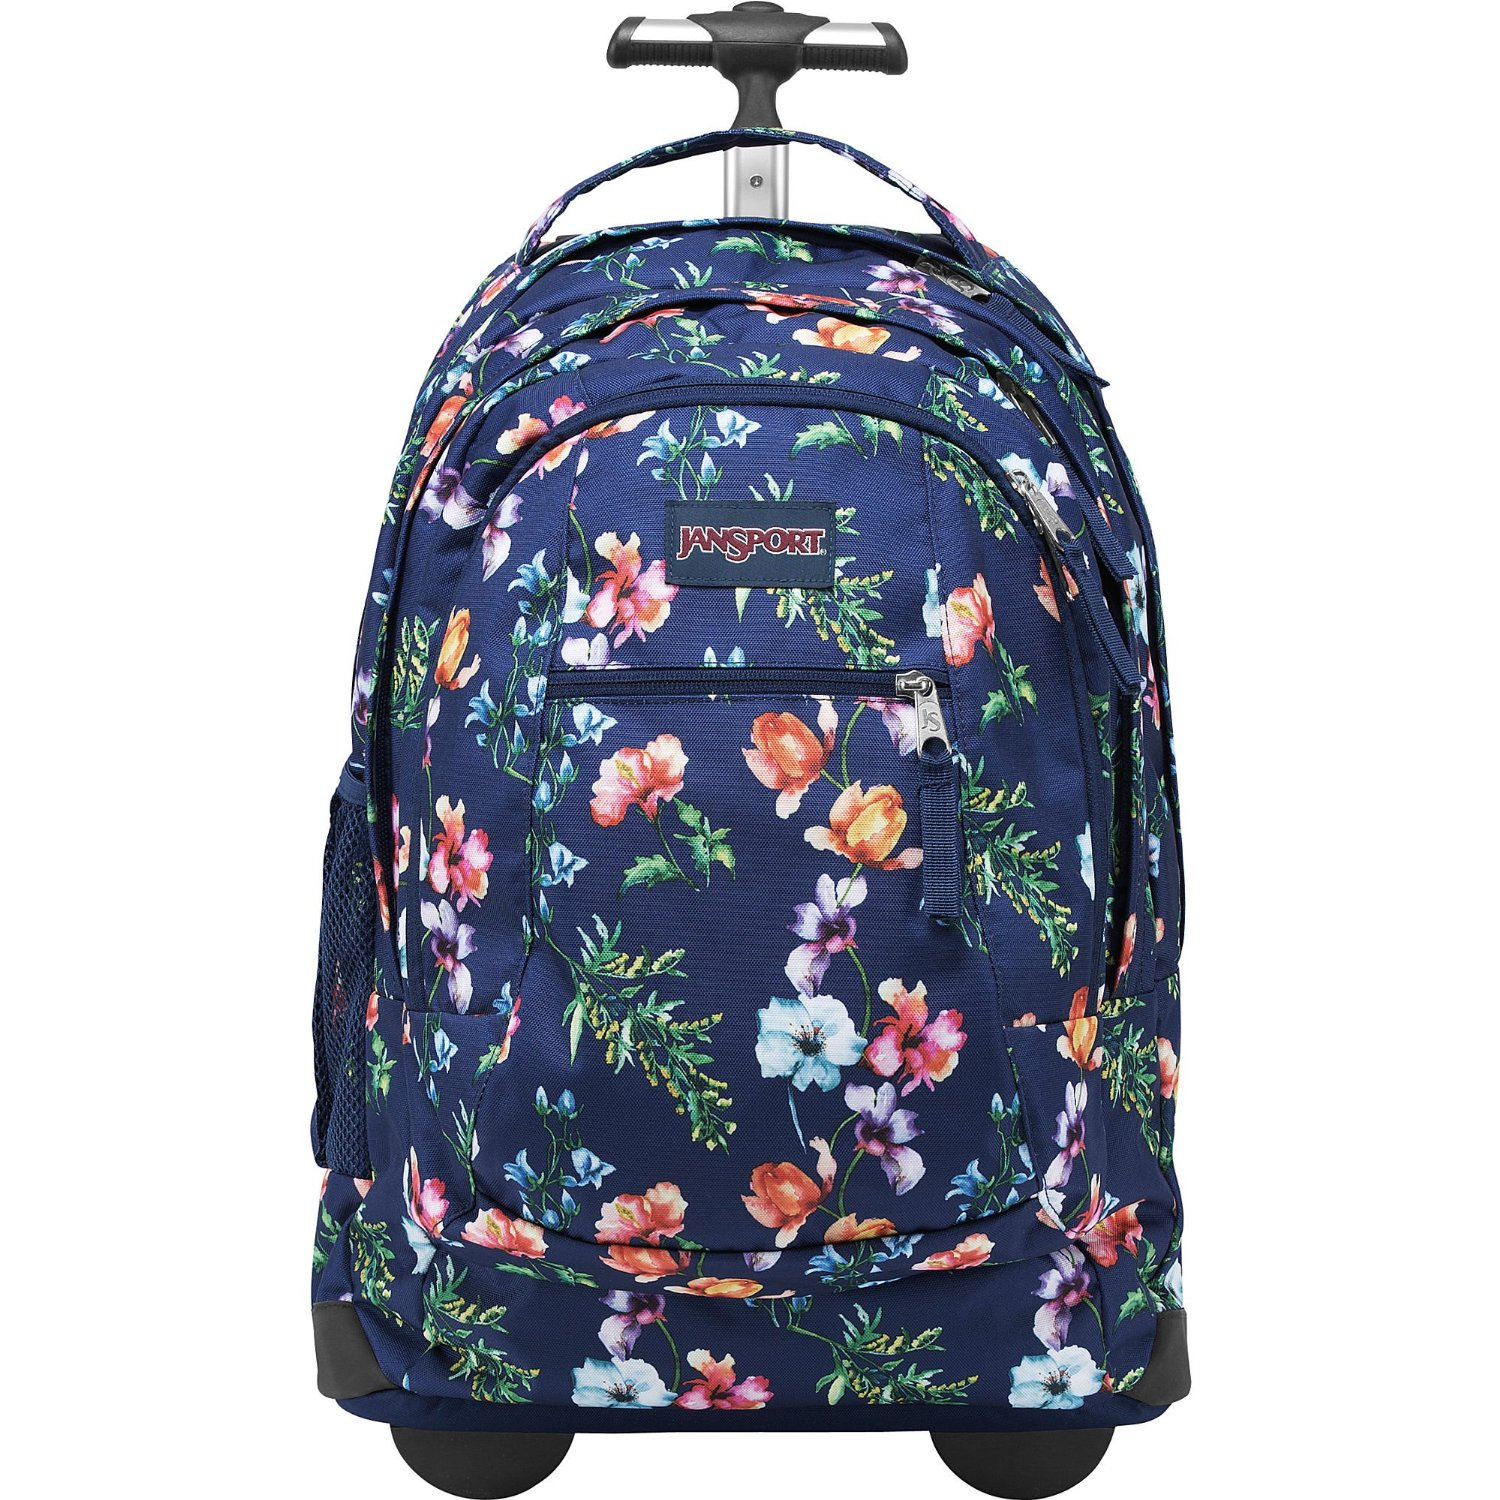 48167d7832241 Get Quotations · JanSport Driver 8 Rolling Backpack with Wheels (Multi Navy  Mountain Meadow)